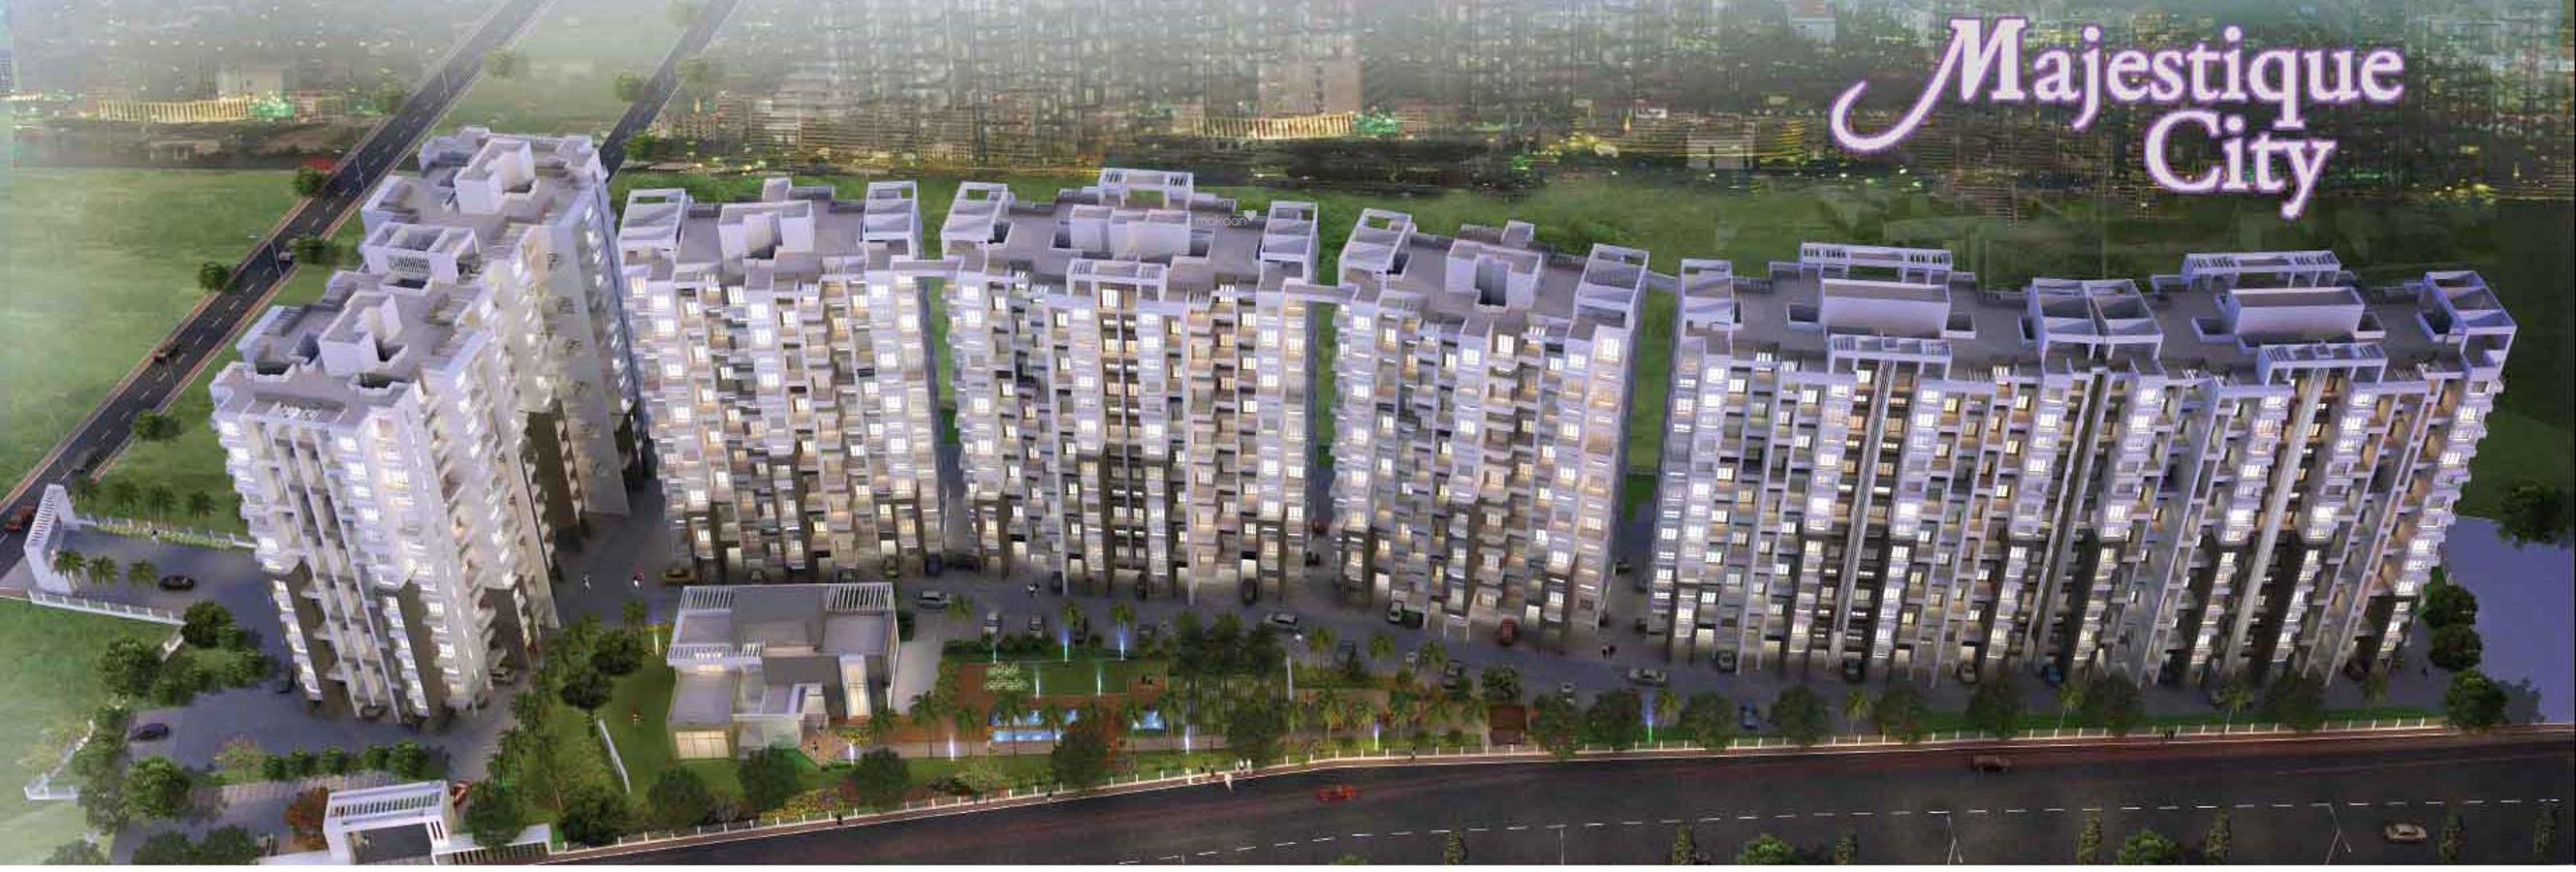 1073 sq ft 2BHK 2BHK+2T (1,073 sq ft) Property By Proptiger In City, Wagholi